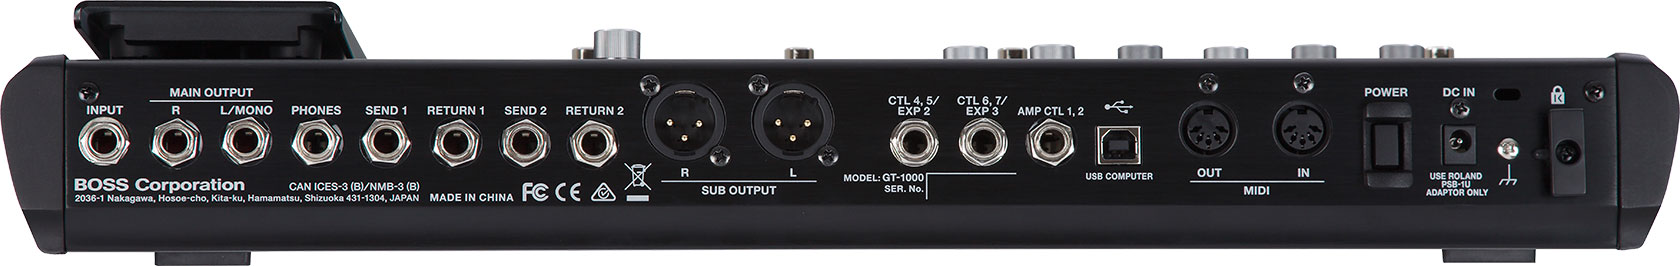 BOSS - GT-1000 | Guitar Effects Processor